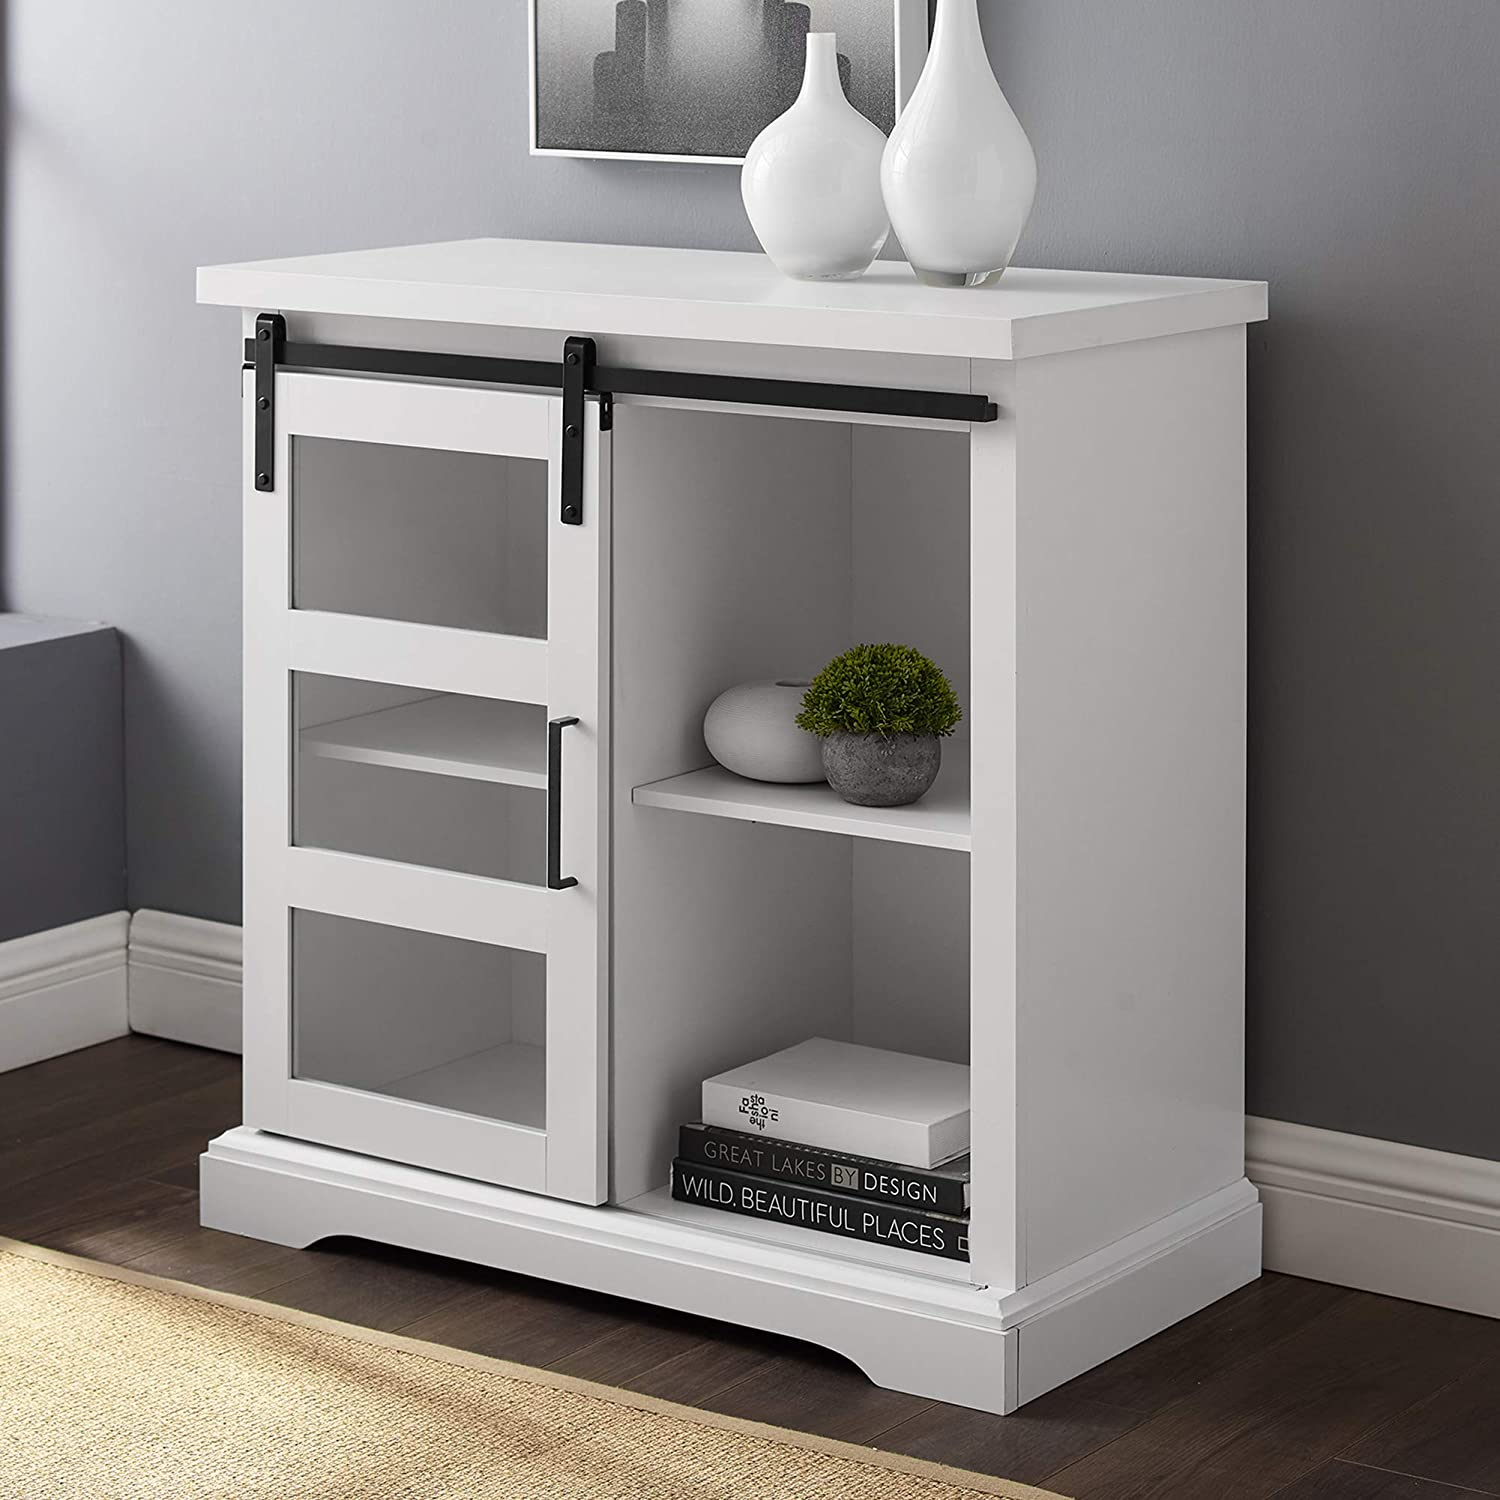 WE Furniture Modern Farmhouse Buffet Entryway Bar Cabinet Storage Entry Table Living Room, 32 Inch, White